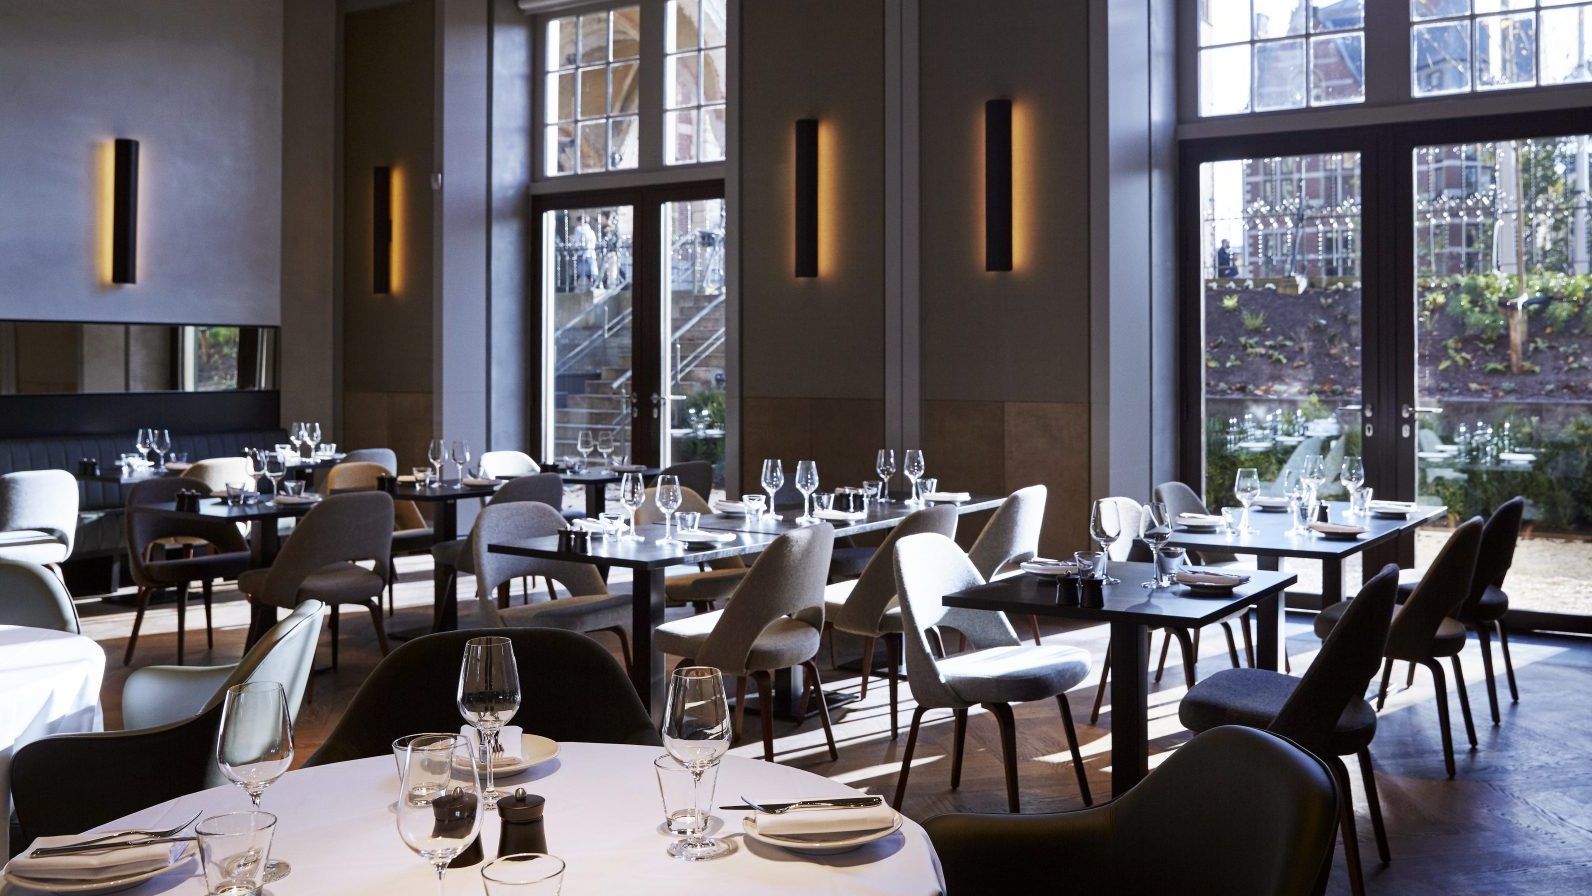 Five Premier Museum Restaurants and Cafés From Around the World